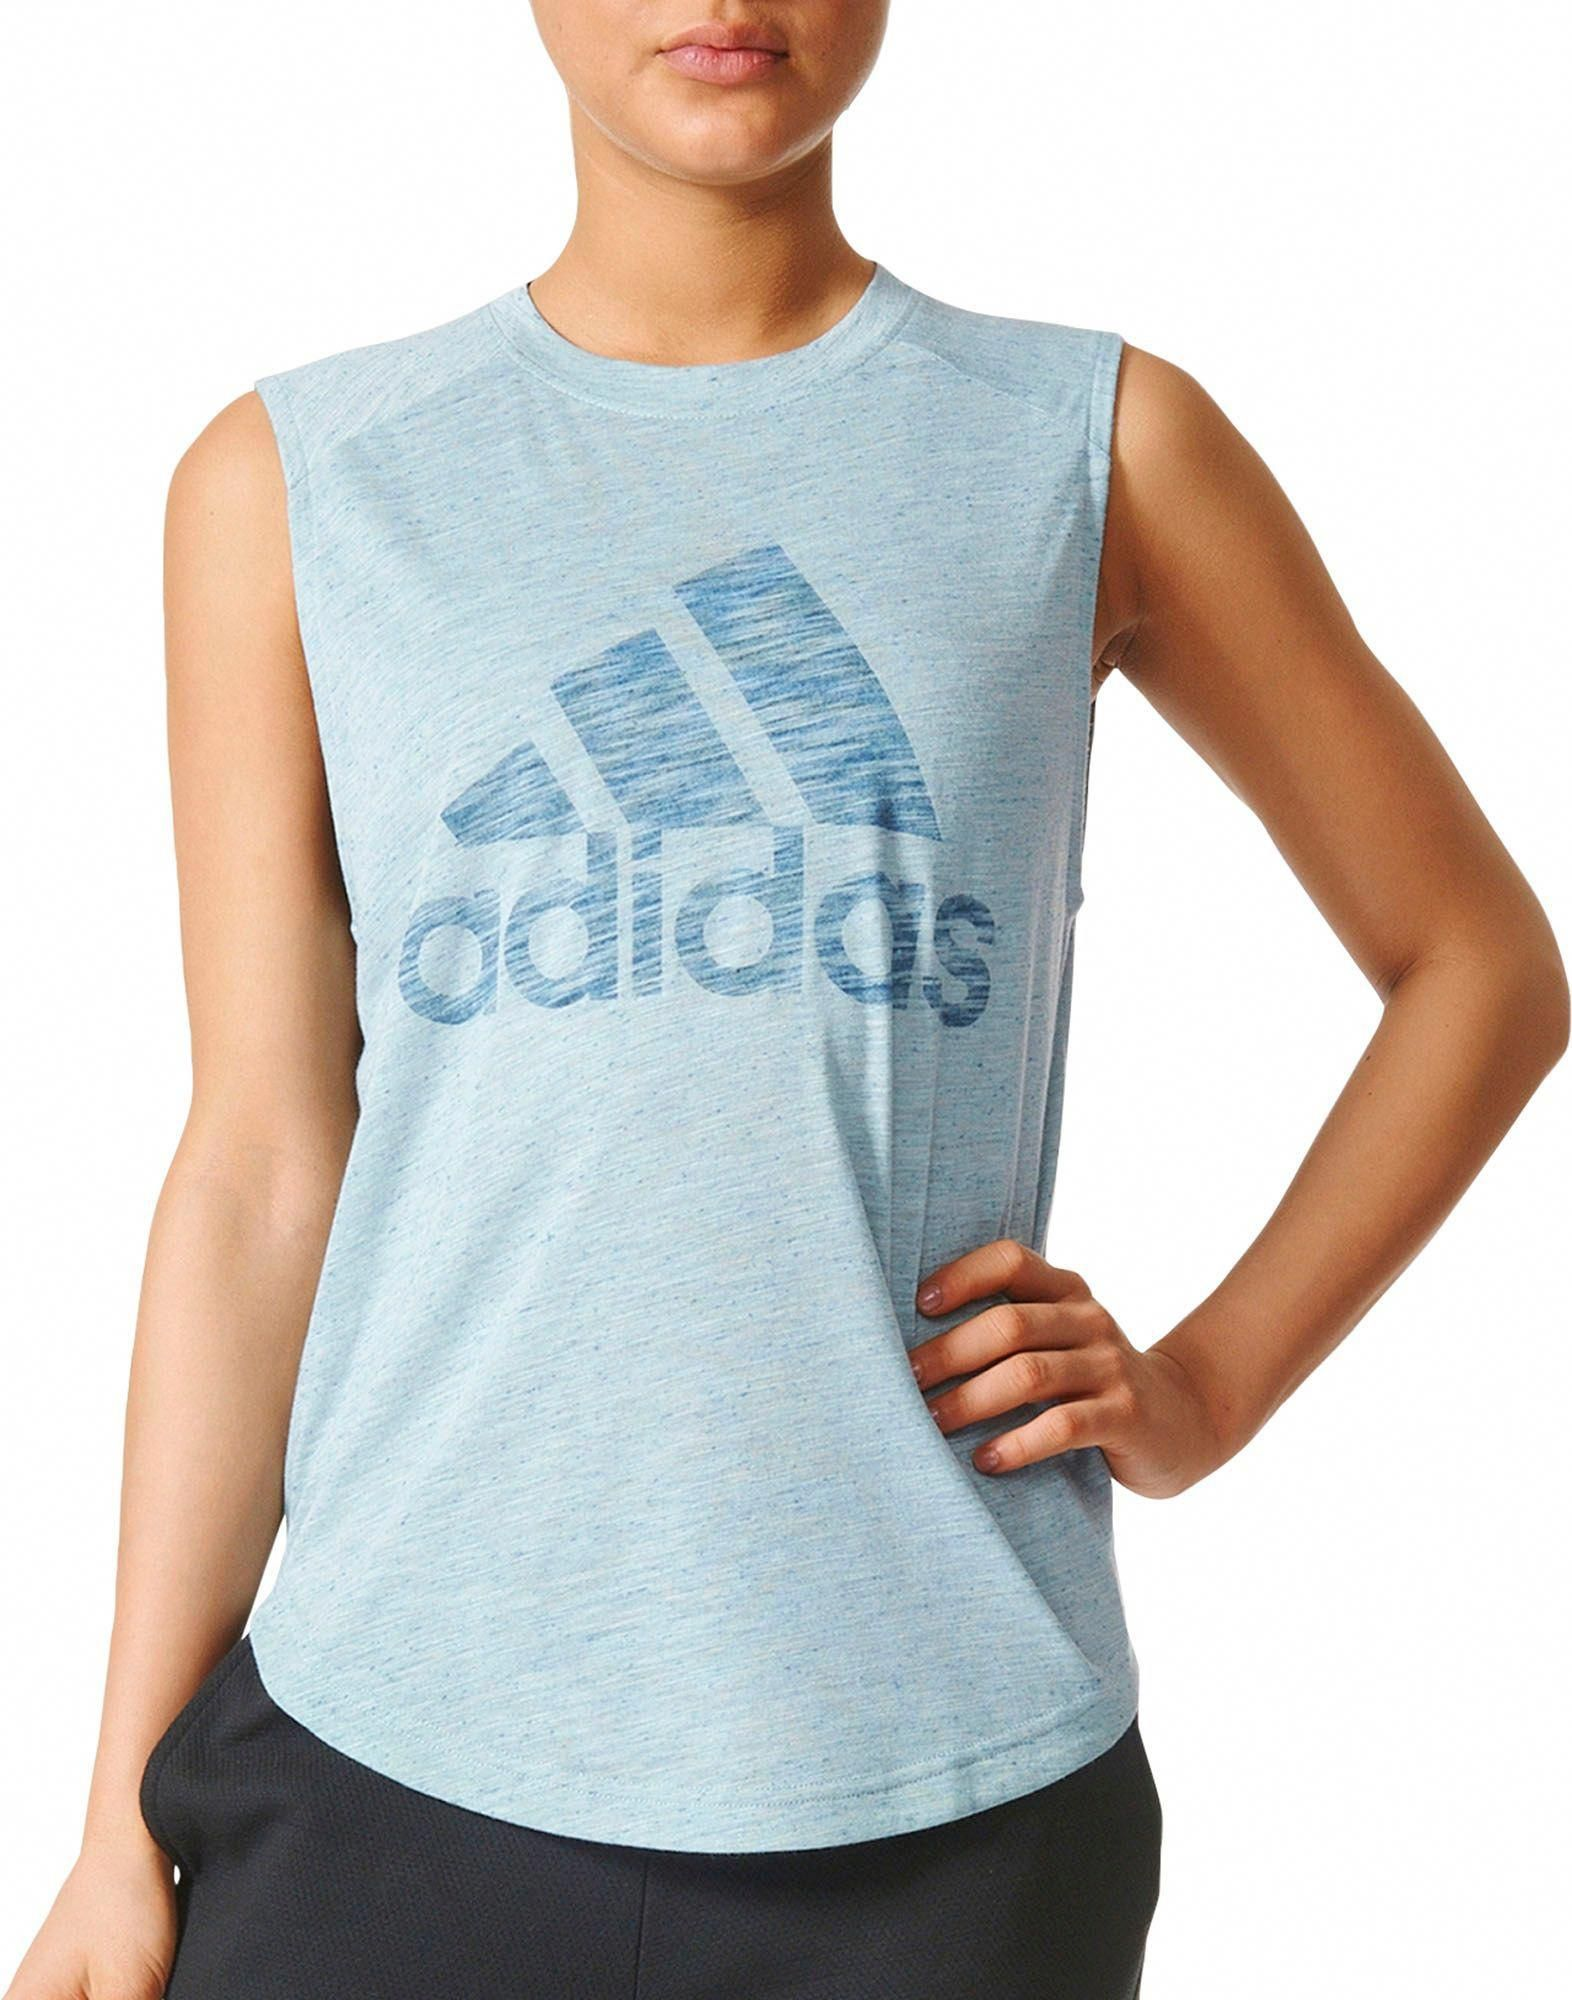 3c5dfe0fce413 adidas Women s Winners Muscle Tank Top